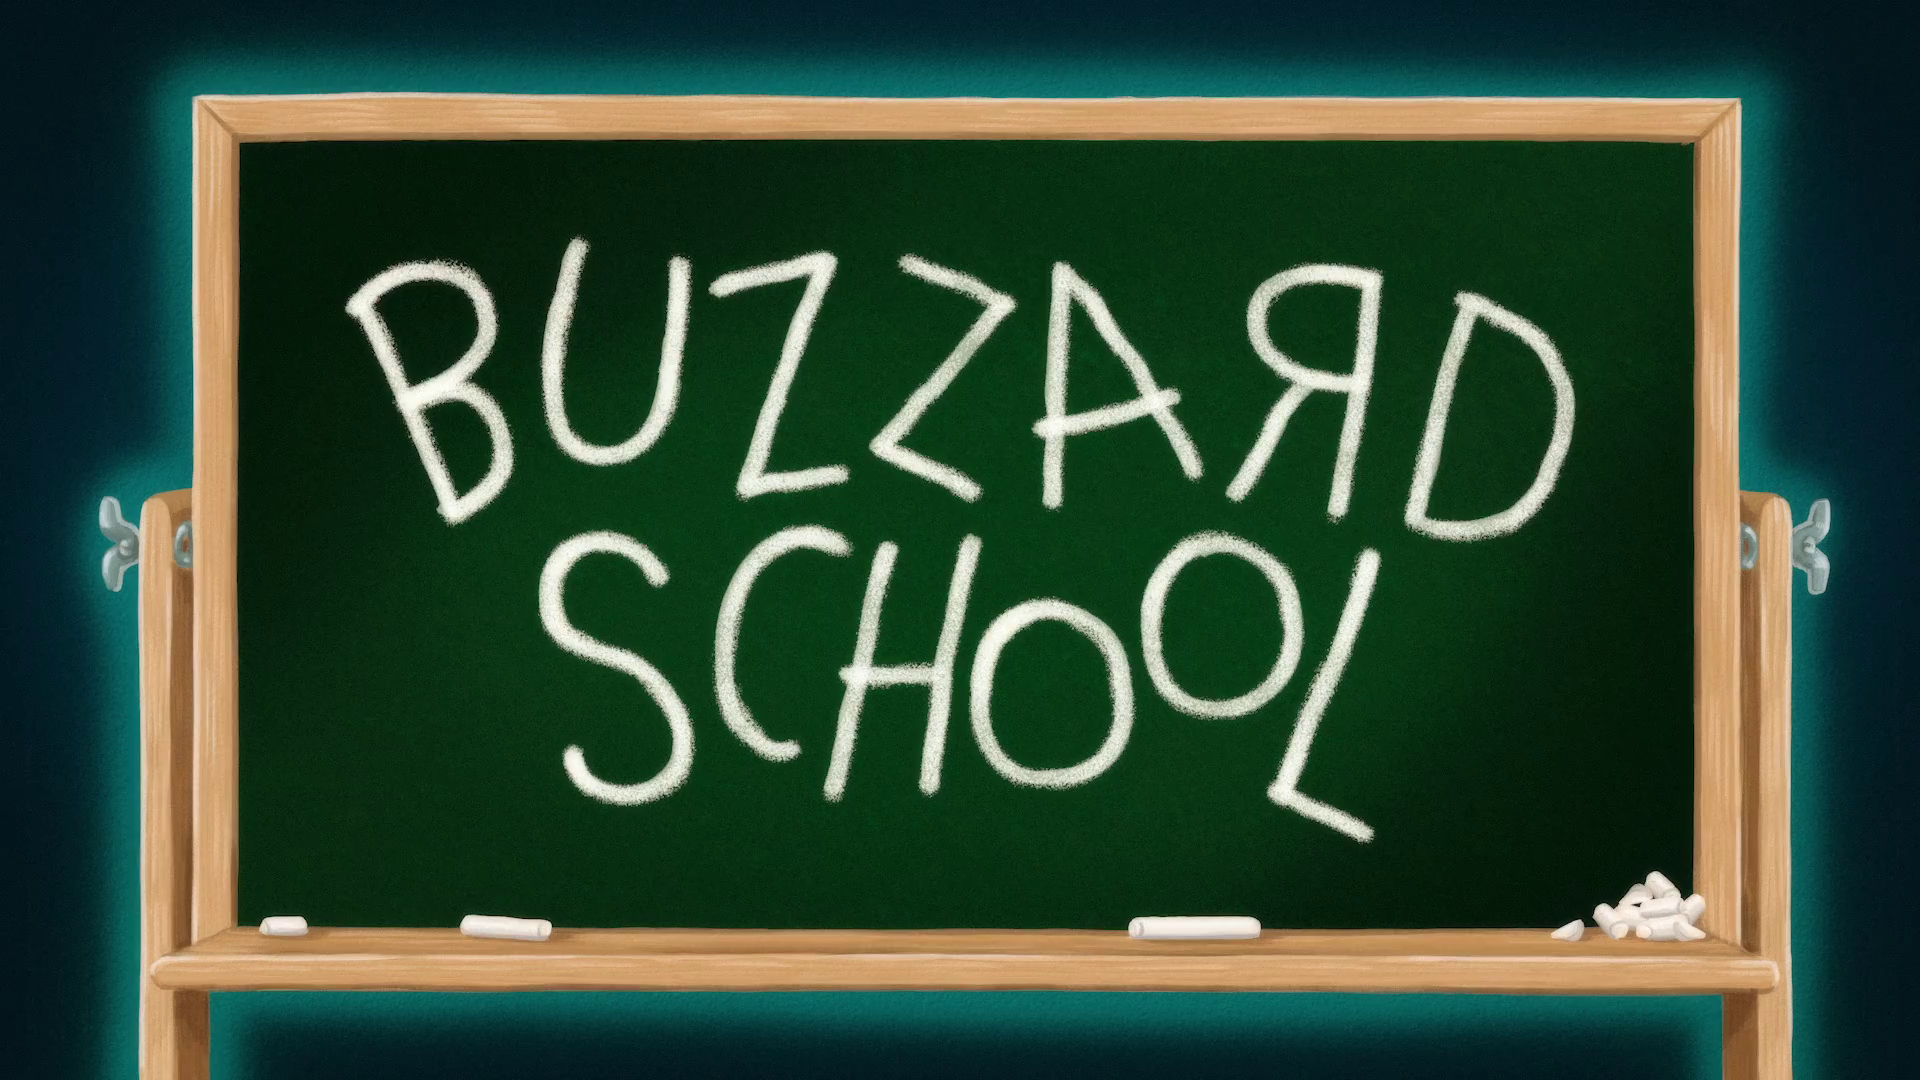 Buzzard School